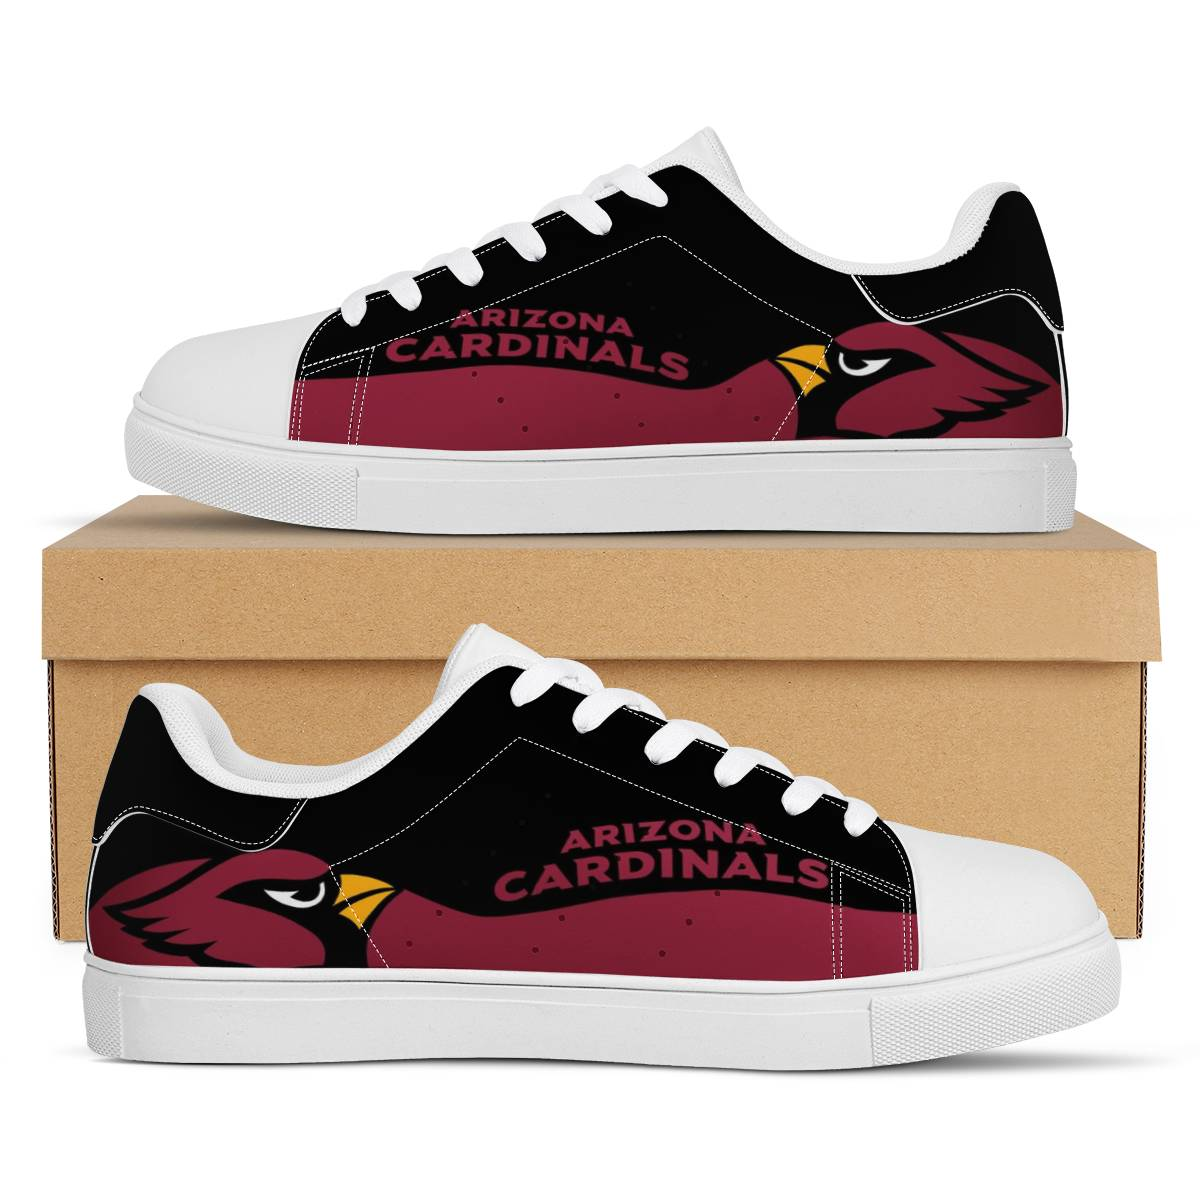 Men's Arizona Cardinals Low Top Leather Sneakers 002